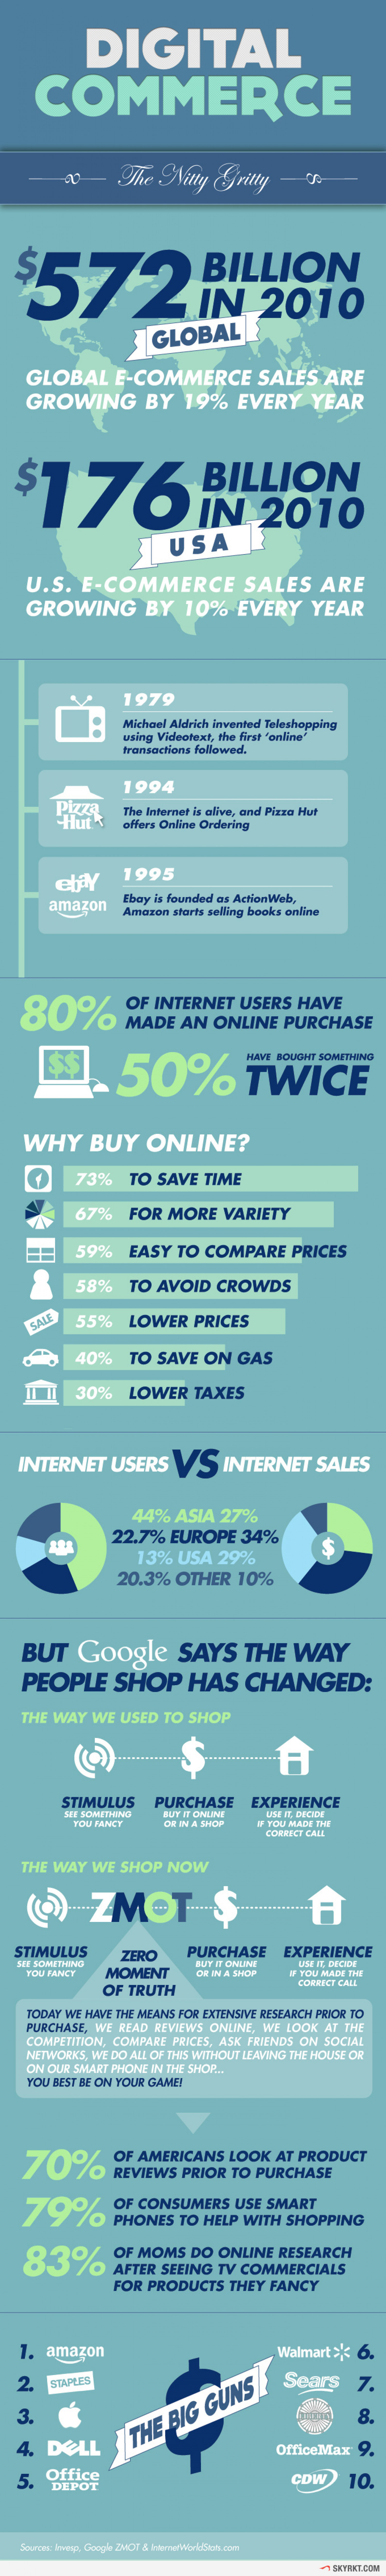 Digital Commerce: The Nitty Gritty Infographic